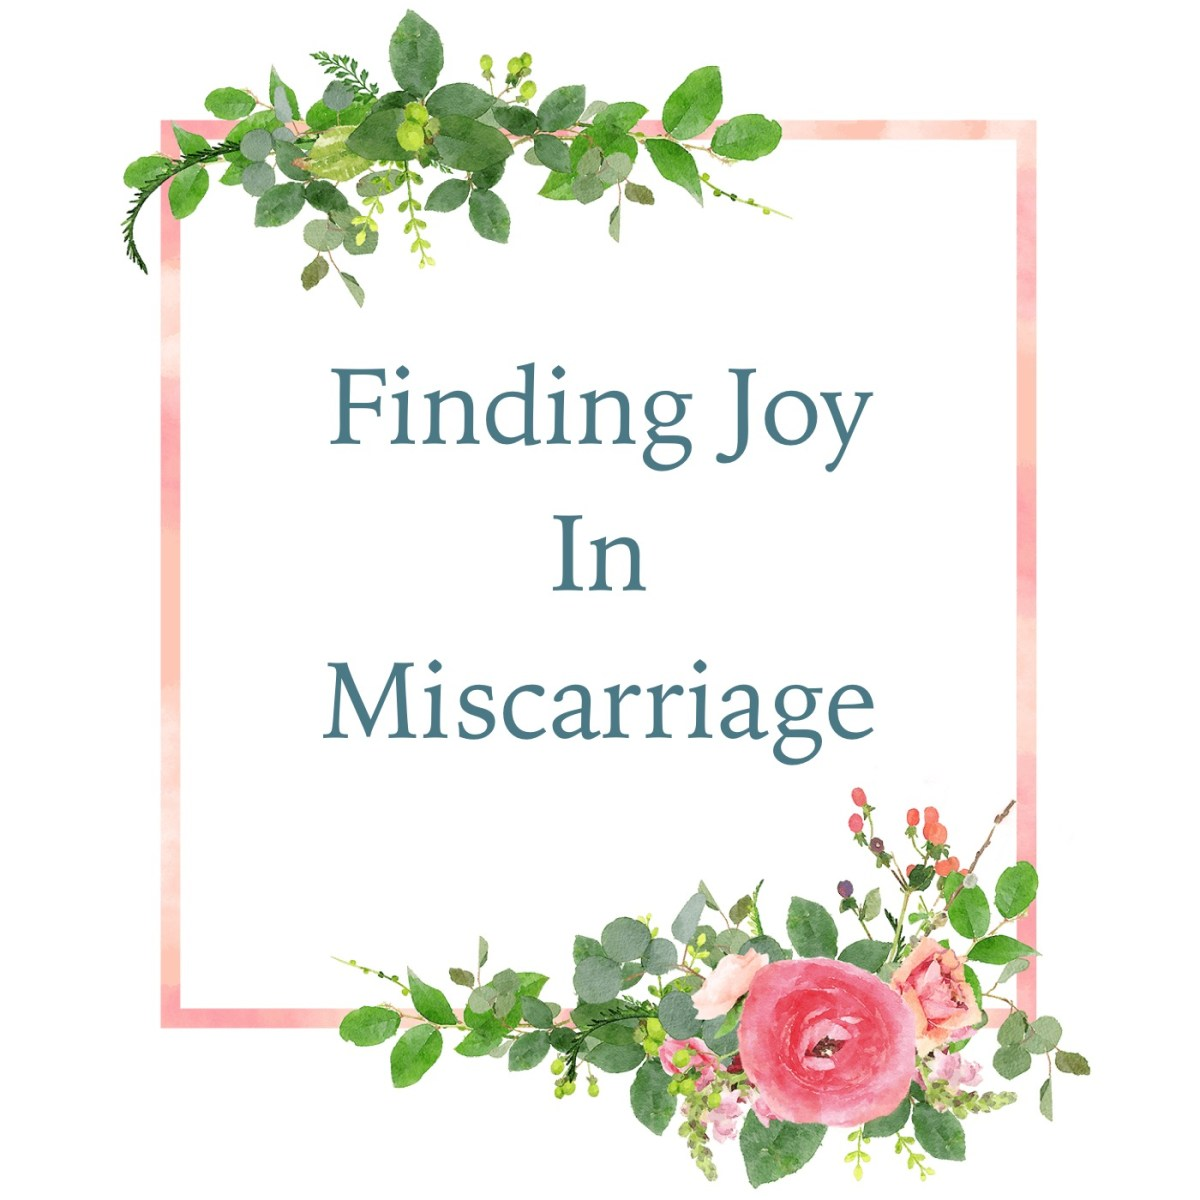 Finding JOY in Miscarriage